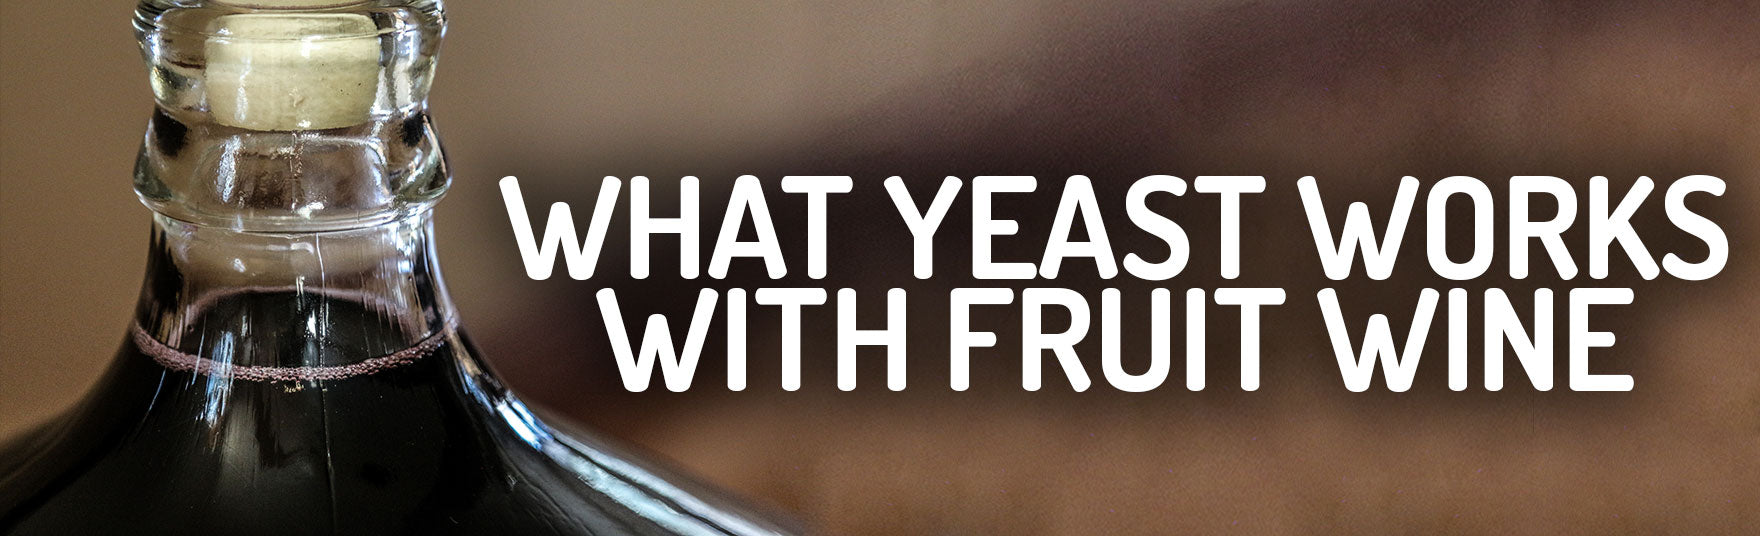 What Yeasts Make Fruit Wine